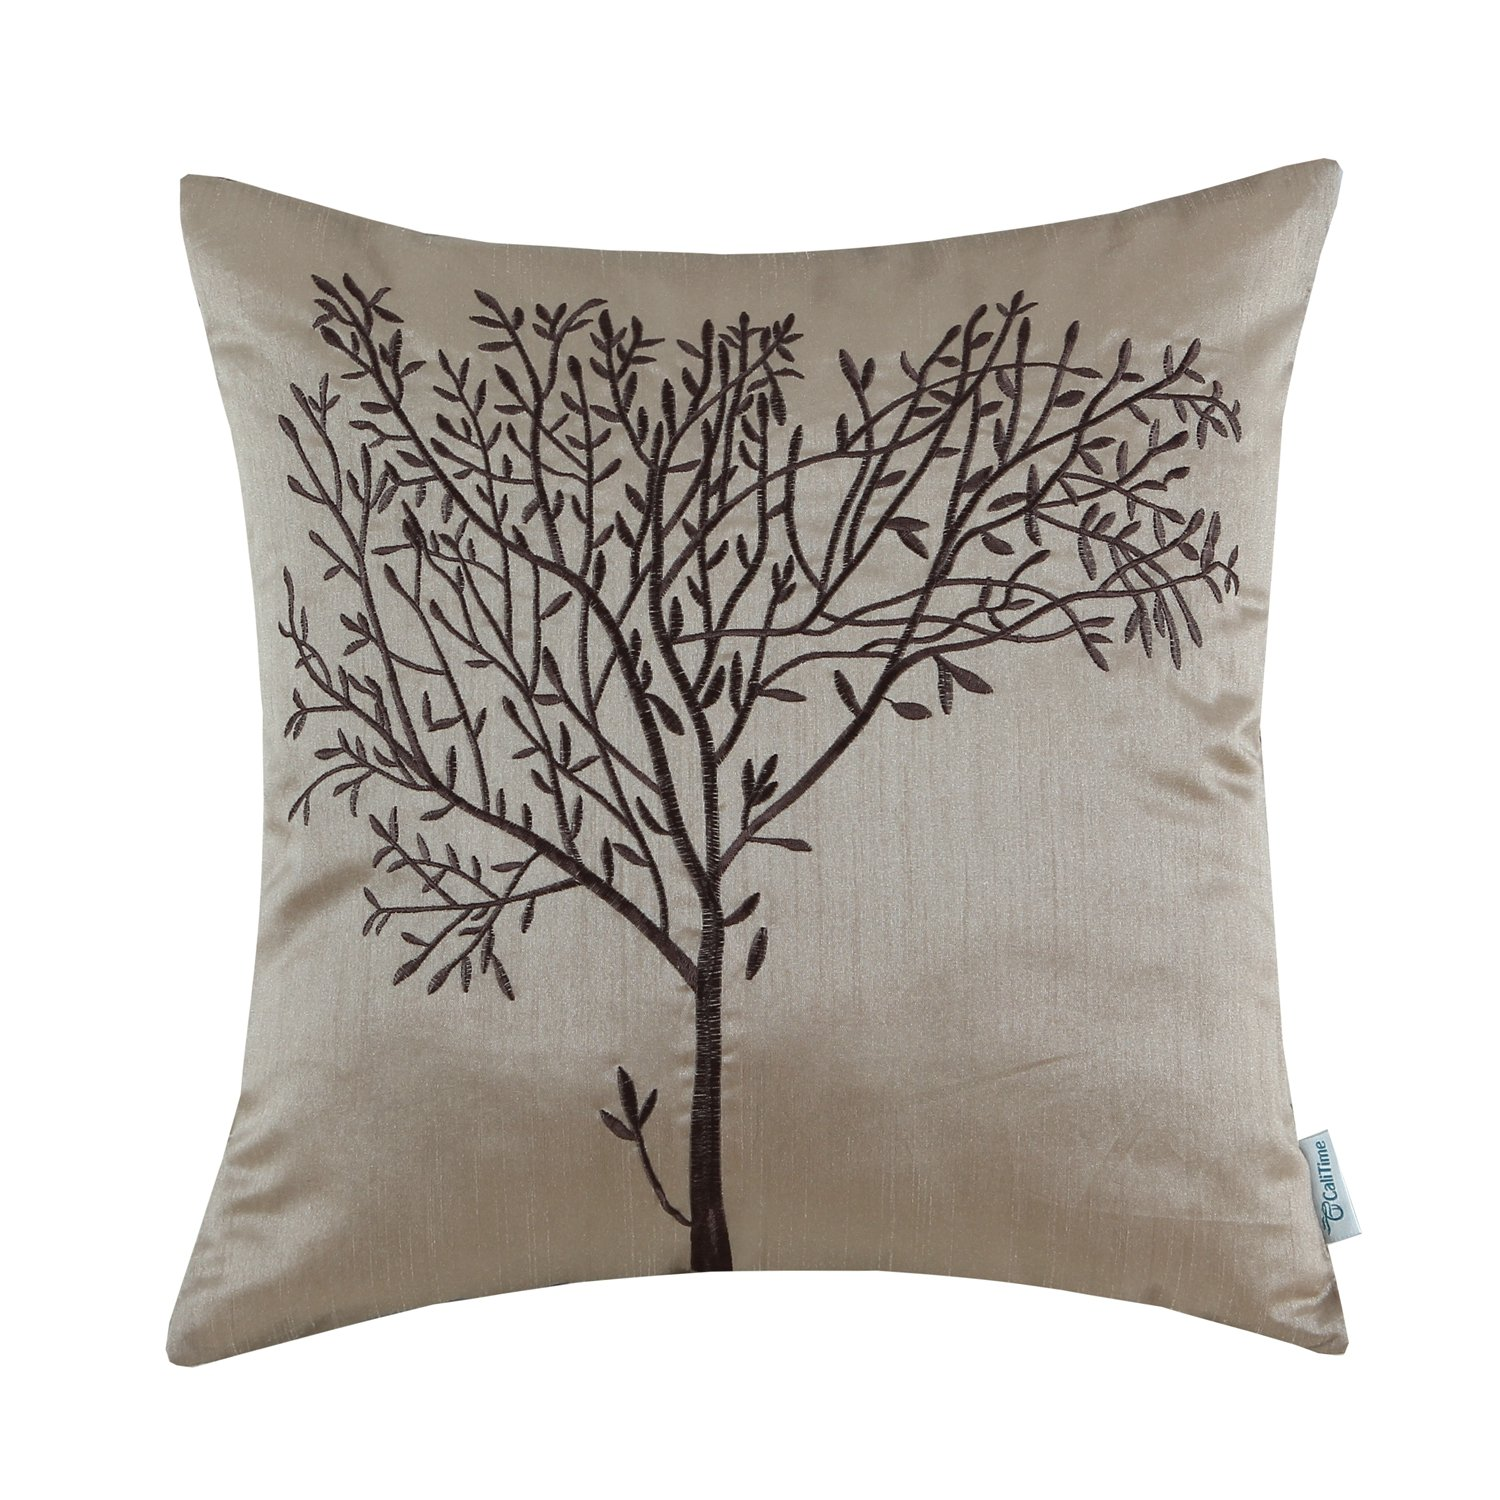 CaliTime Cushion Cover Throw Pillow Case Shell for Home Sofa Couch, Natural Tree Embroidered, 45cm x 45cm, Gold Qingdao Ray Trading Co. Ltd. DSC0282I